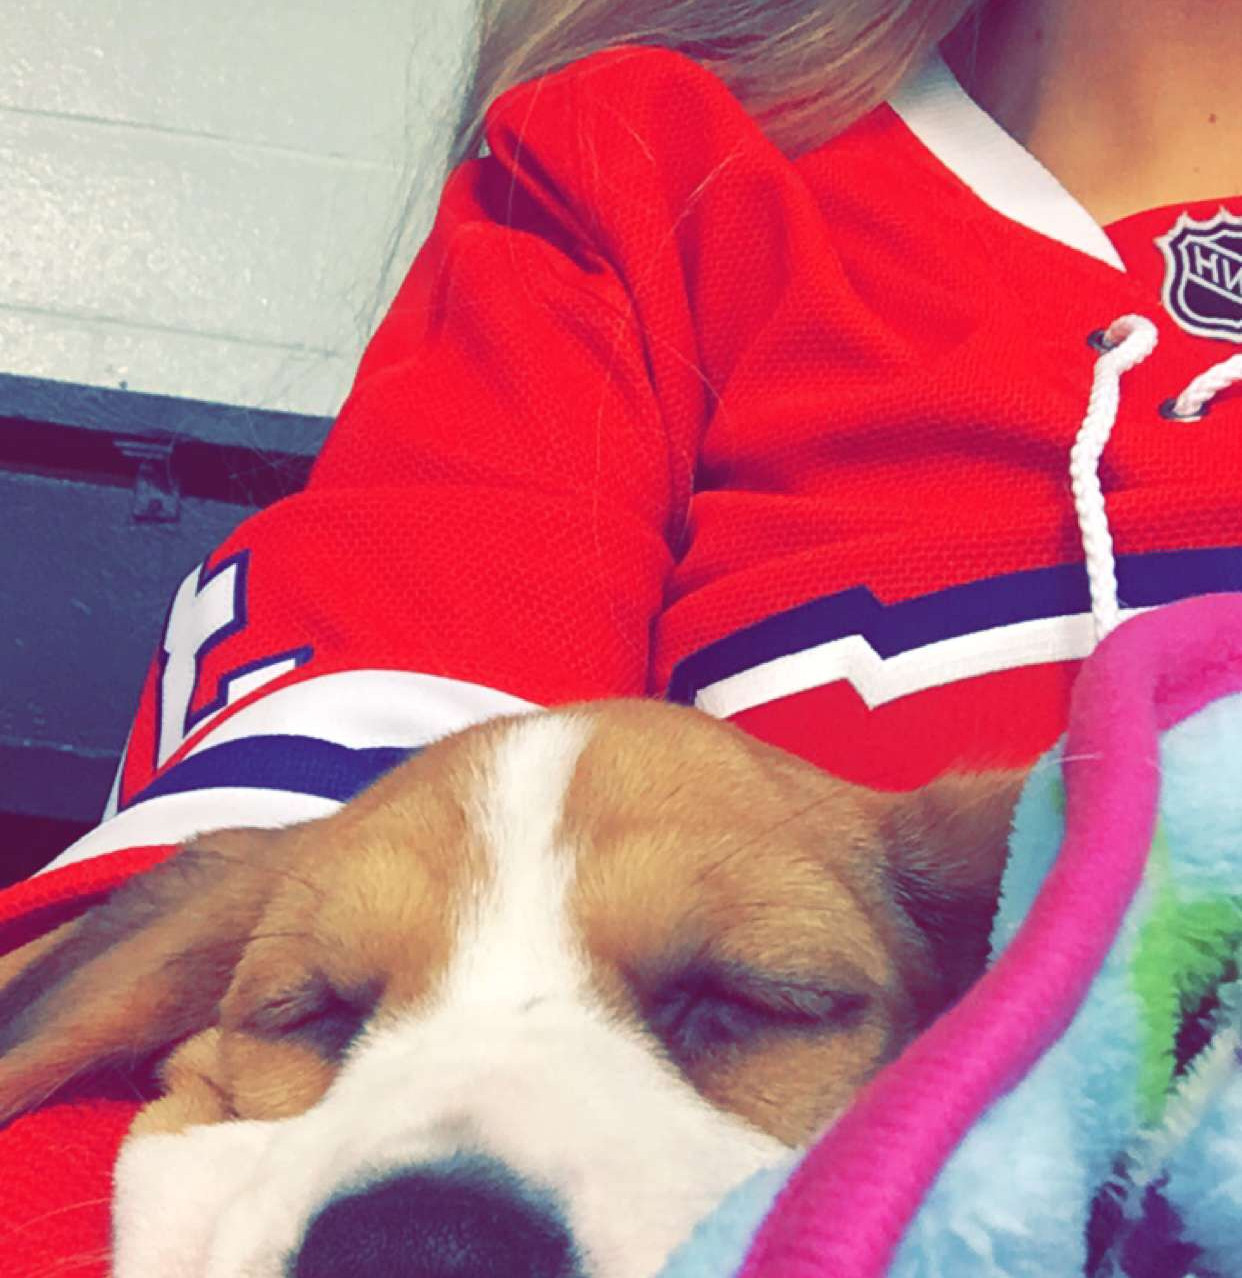 Snoozing during the hockey game